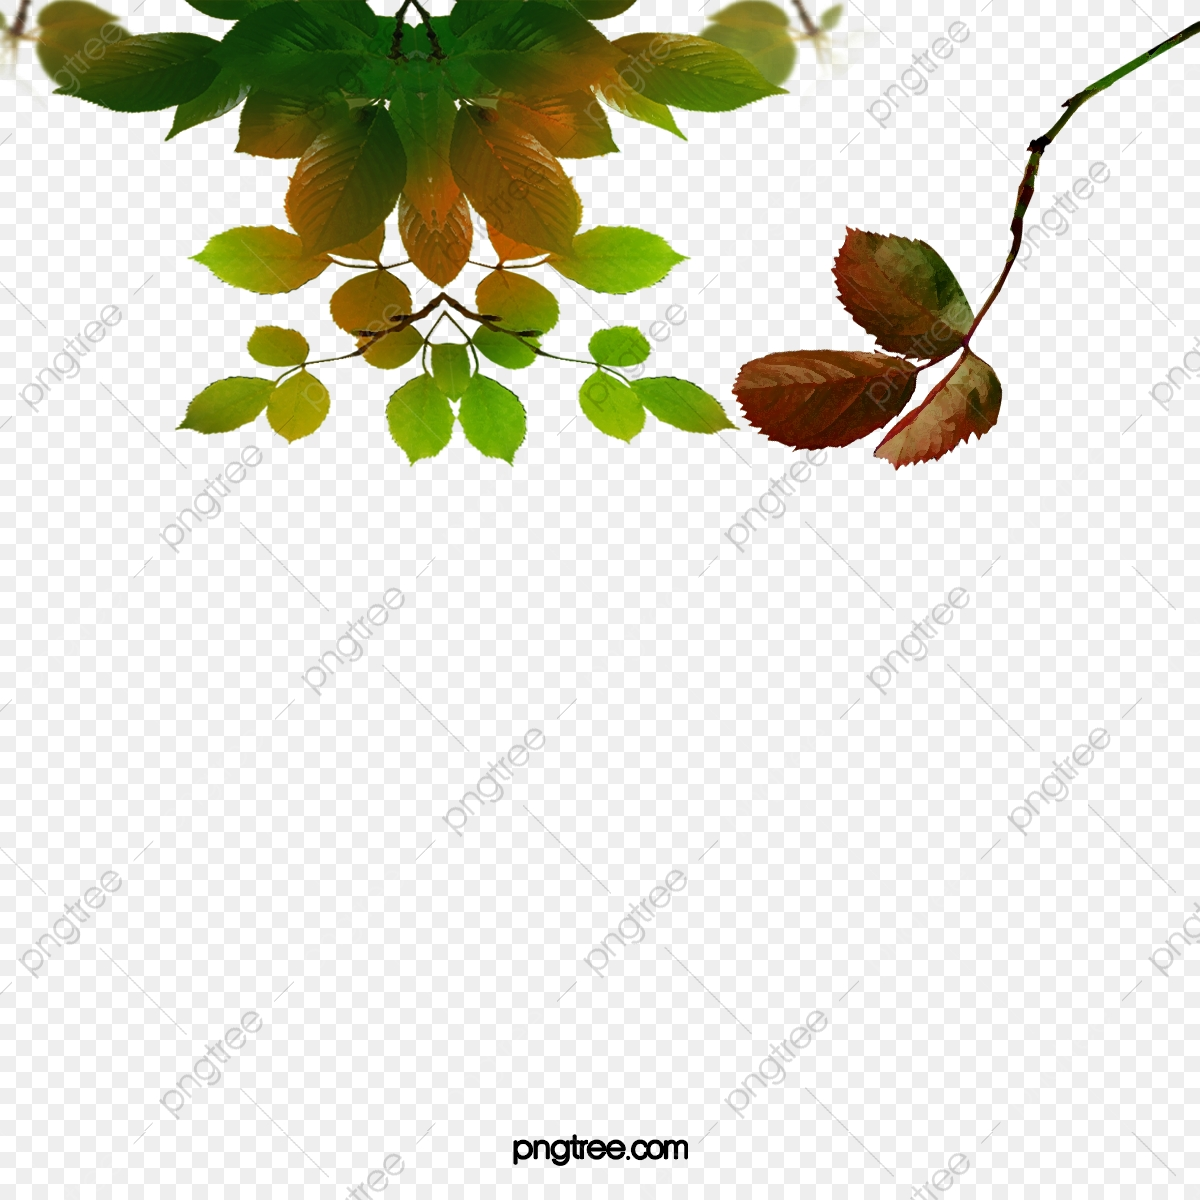 Bodhi Tree Leaves Picture Material, Tree Clipart, Bodhi Tree, Leaves.